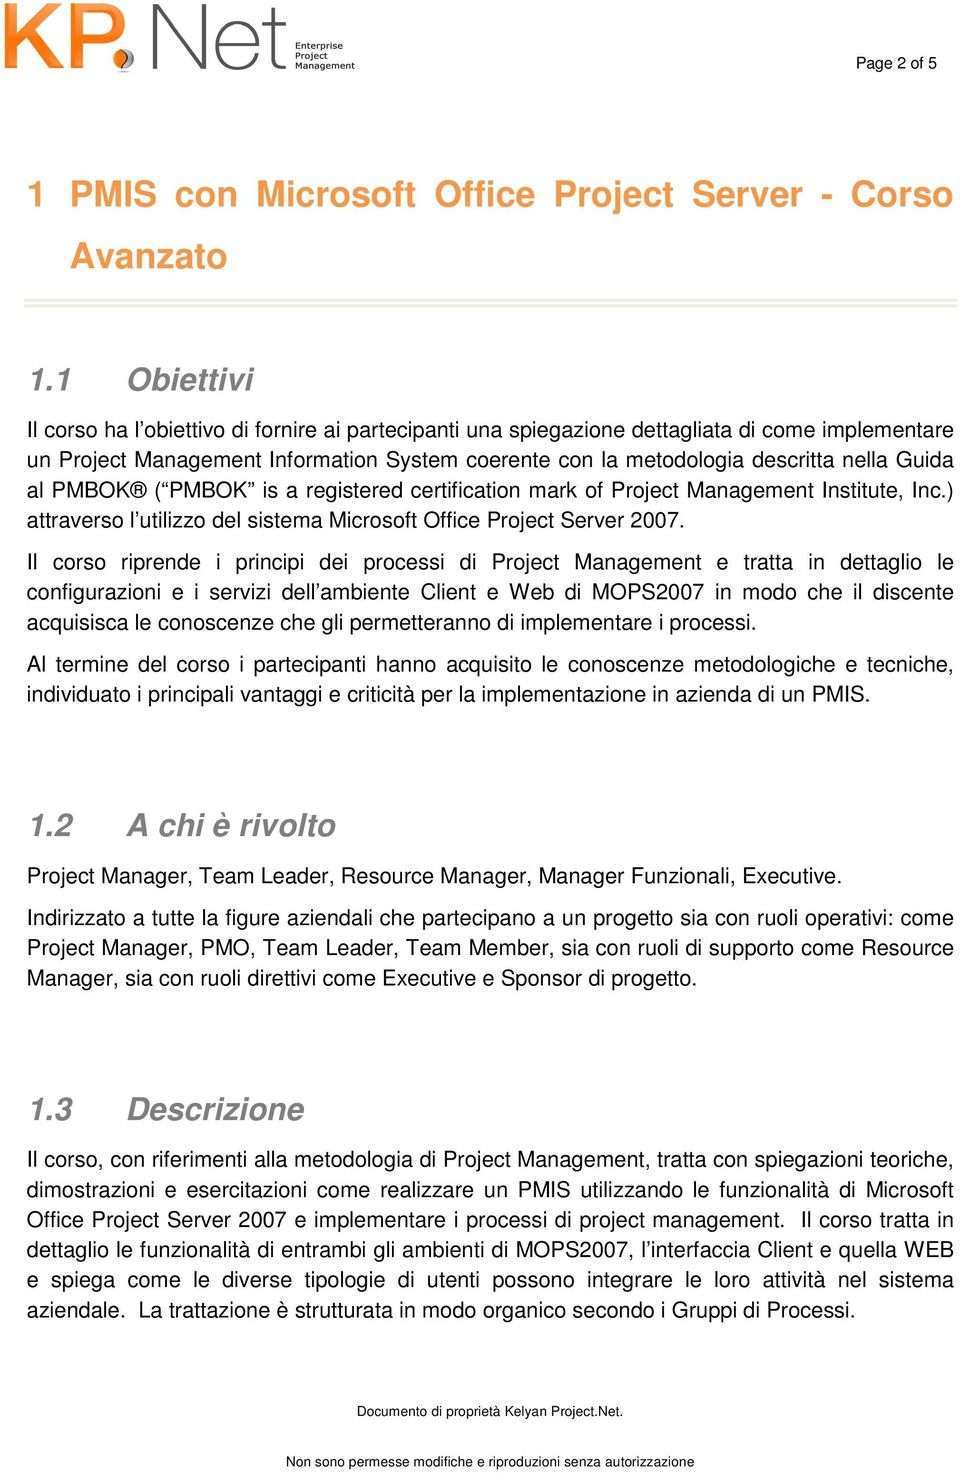 Guida al PMBOK ( PMBOK is a registered certification mark of Project Management Institute, Inc.) attraverso l utilizzo del sistema Microsoft Office Project Server 2007.